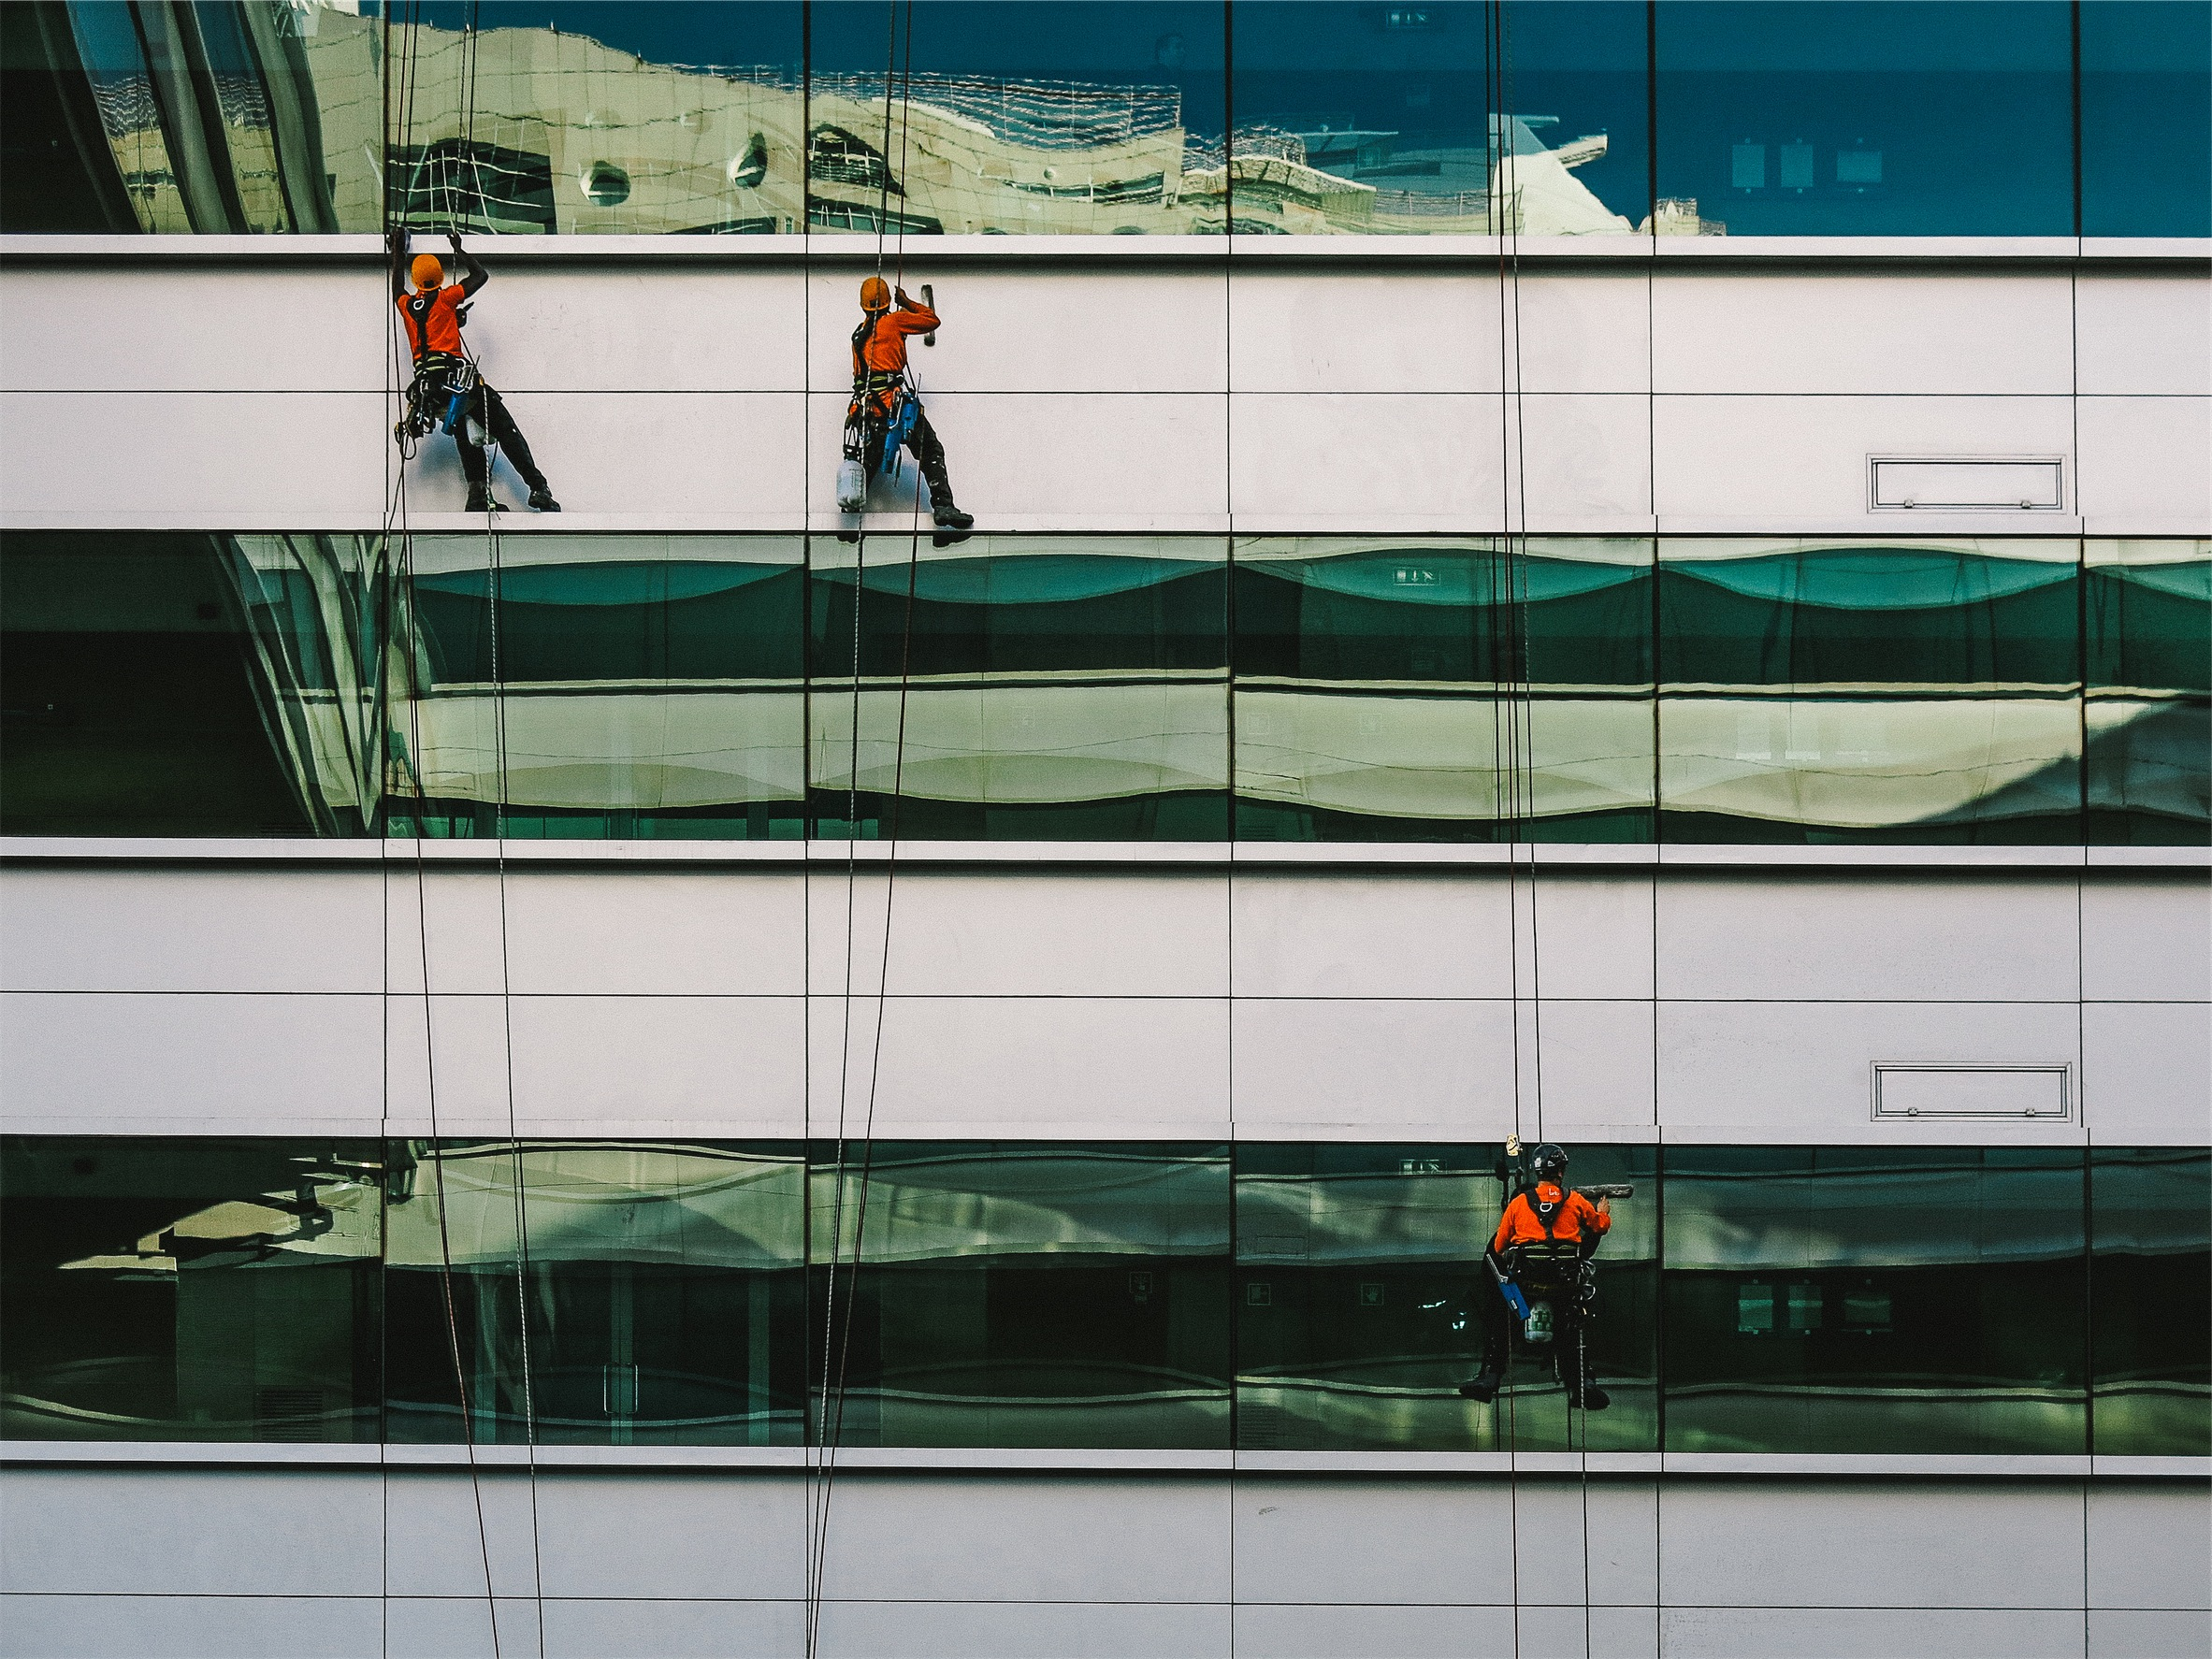 window washers on the side of a building